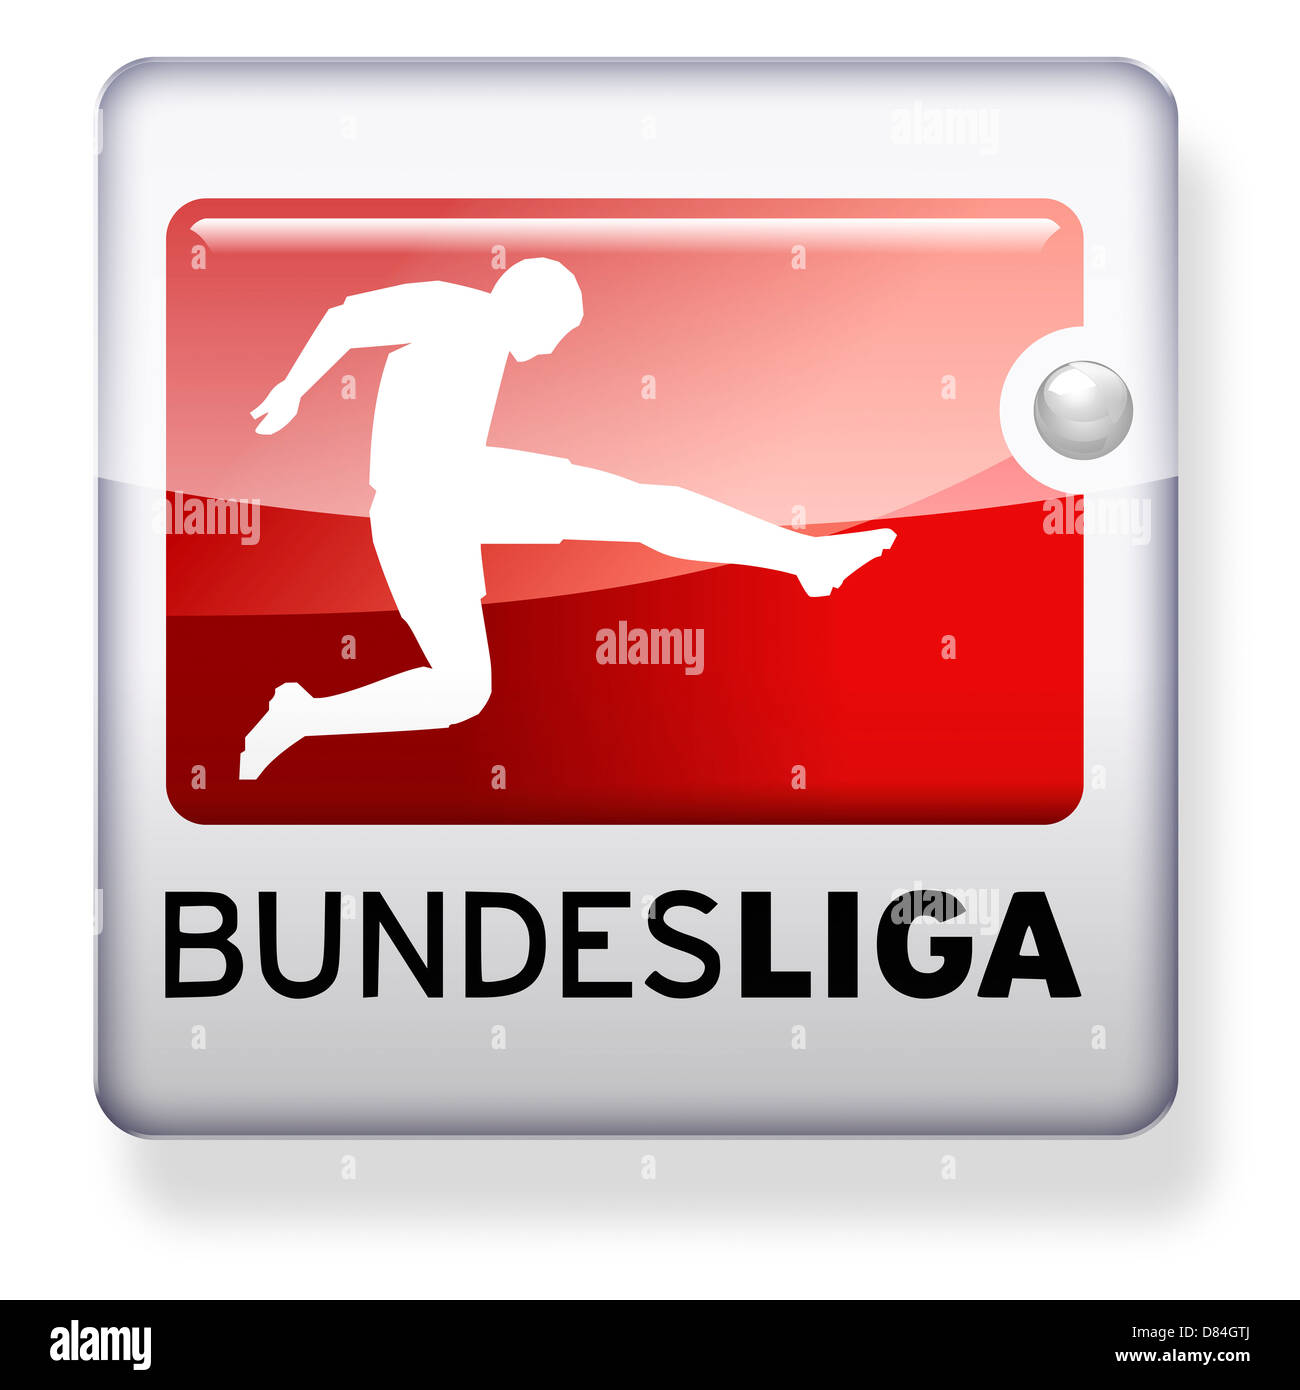 bundesliga logo cut out stock images pictures alamy https www alamy com stock photo bundesliga logo as an app icon clipping path included 56649394 html